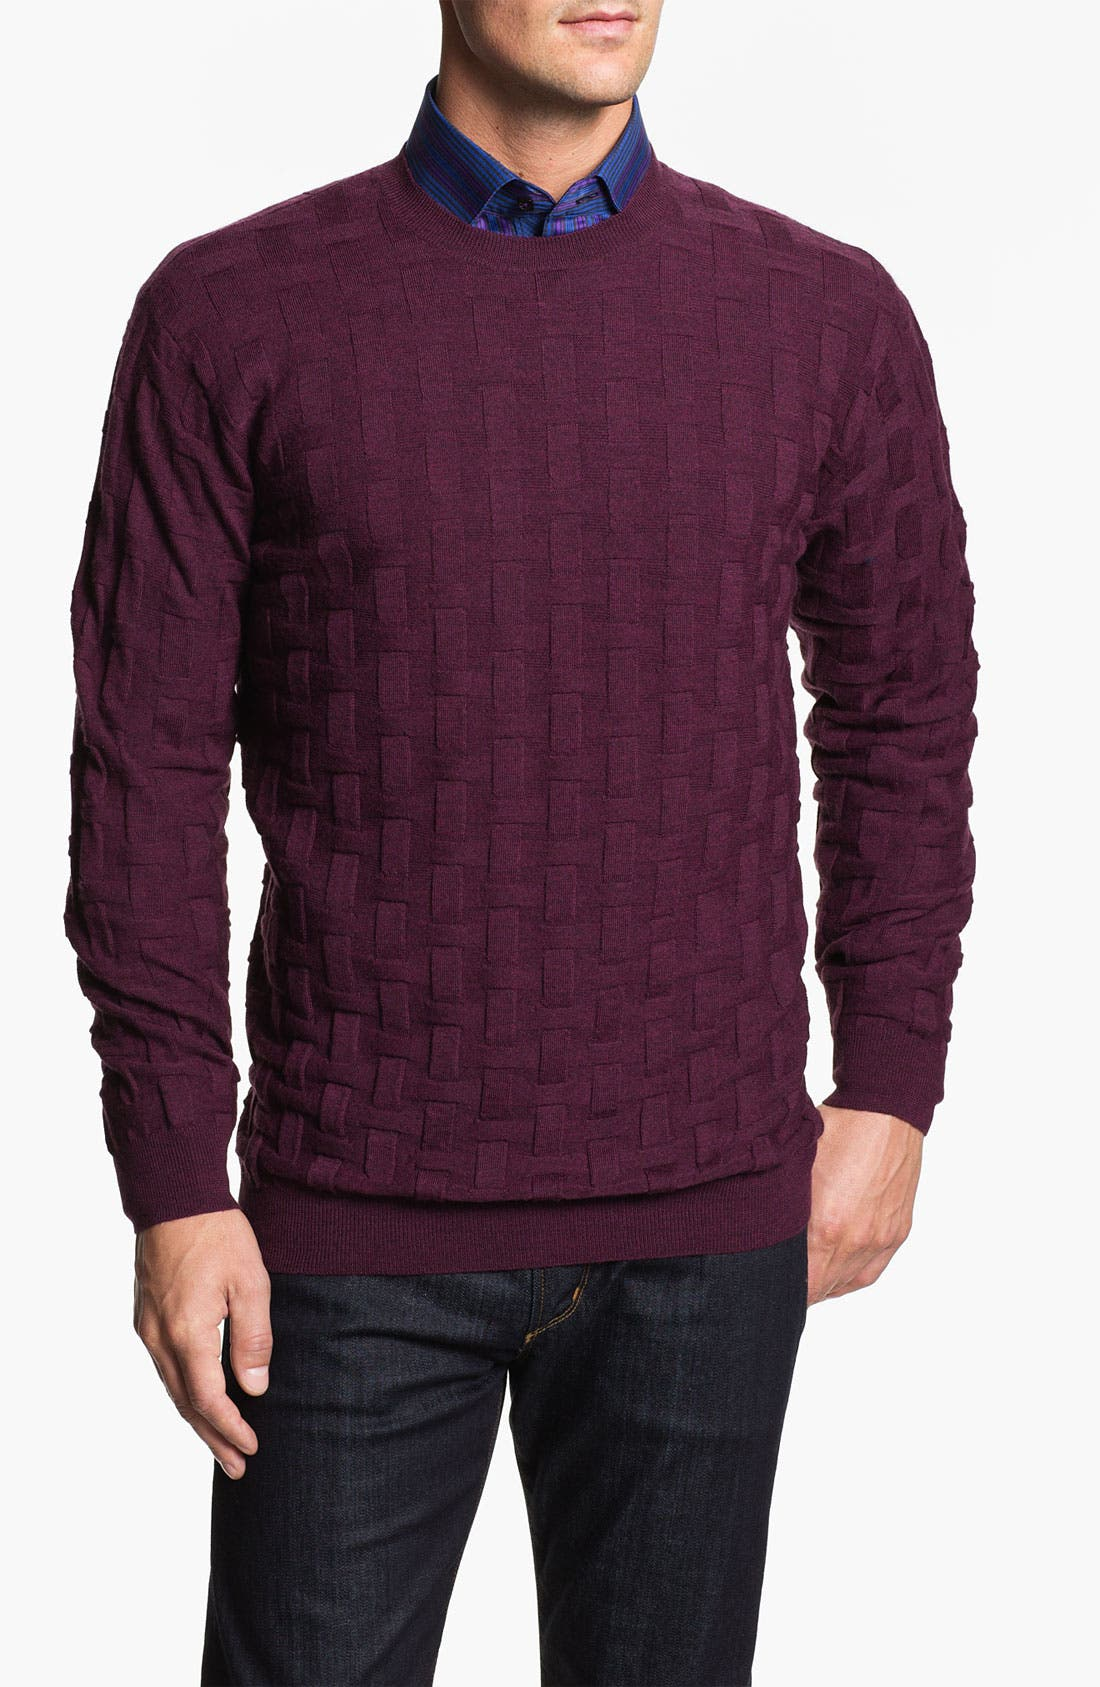 Alternate Image 1 Selected - Bugatchi Uomo Crewneck Merino Wool Sweater